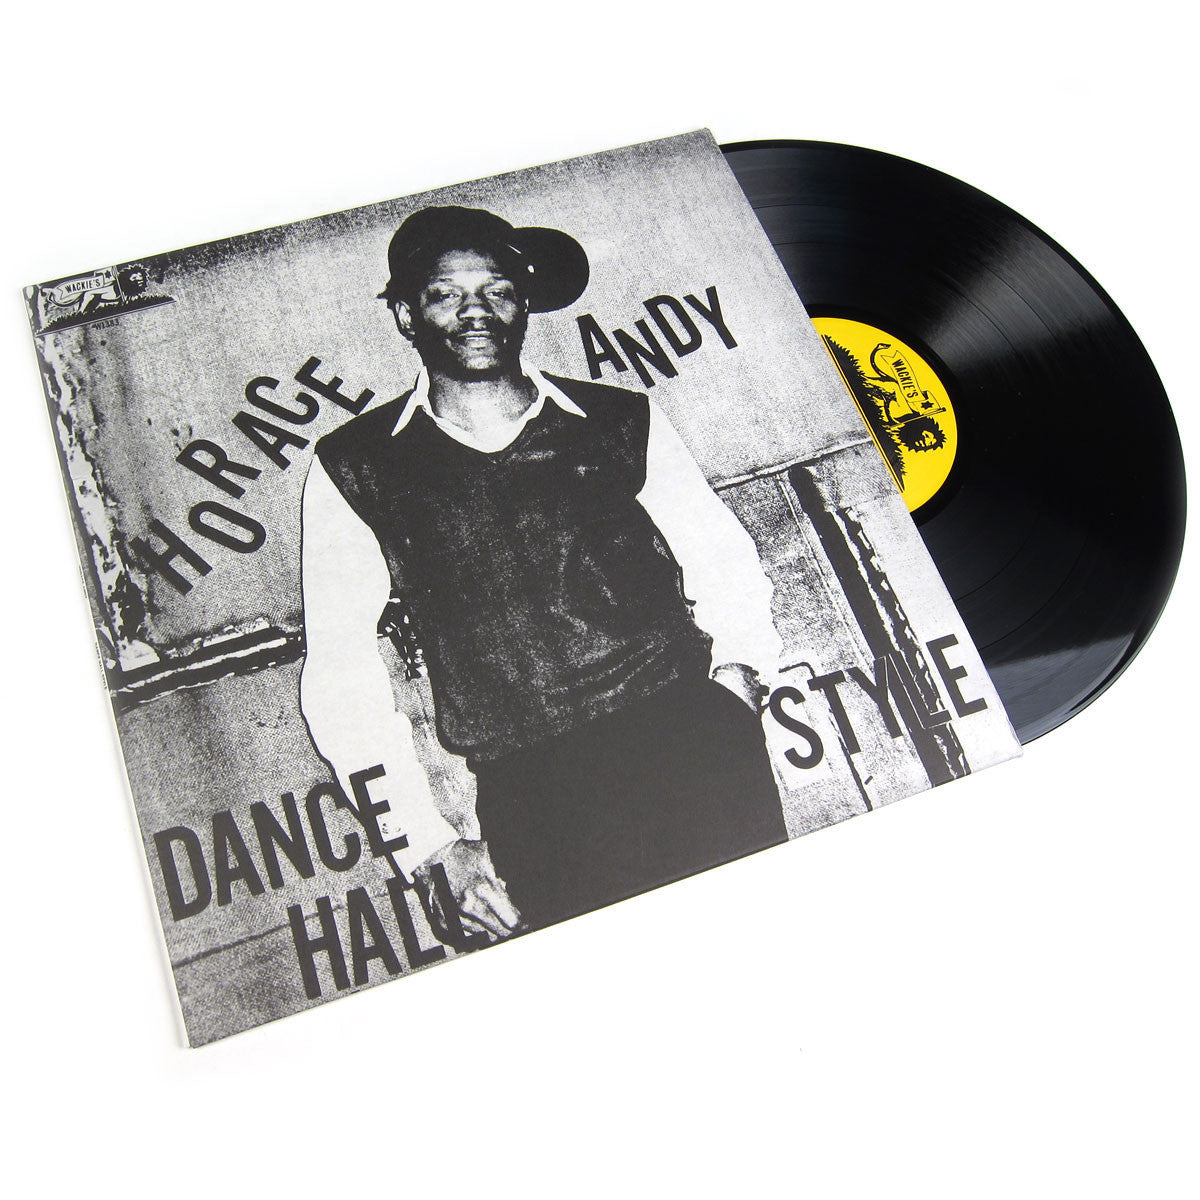 Horace Andy: Dance Hall Style Vinyl LP